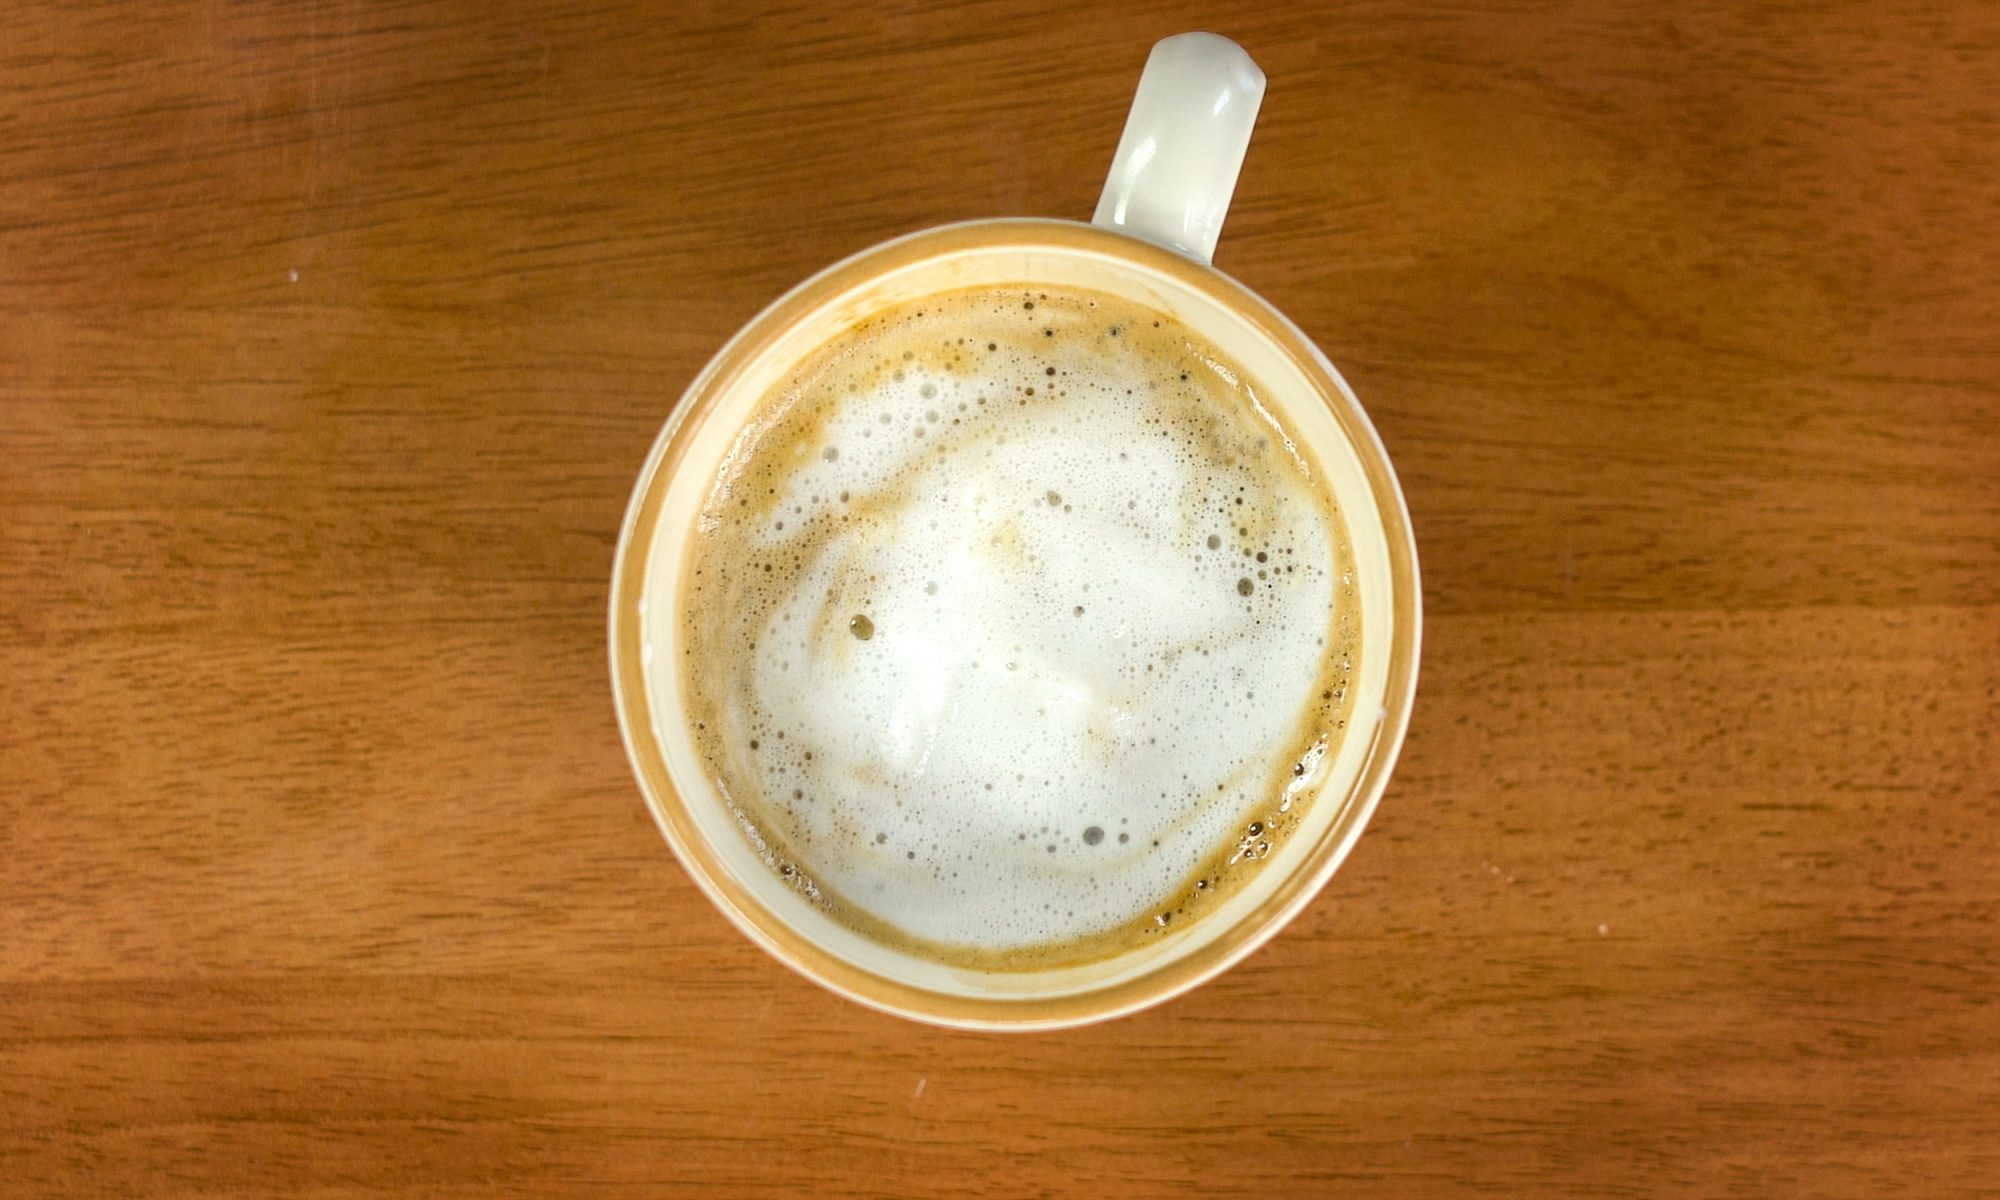 EC: This No-Machine Cappuccino Hack Will Make You Feel Like a Coffee Aficionado